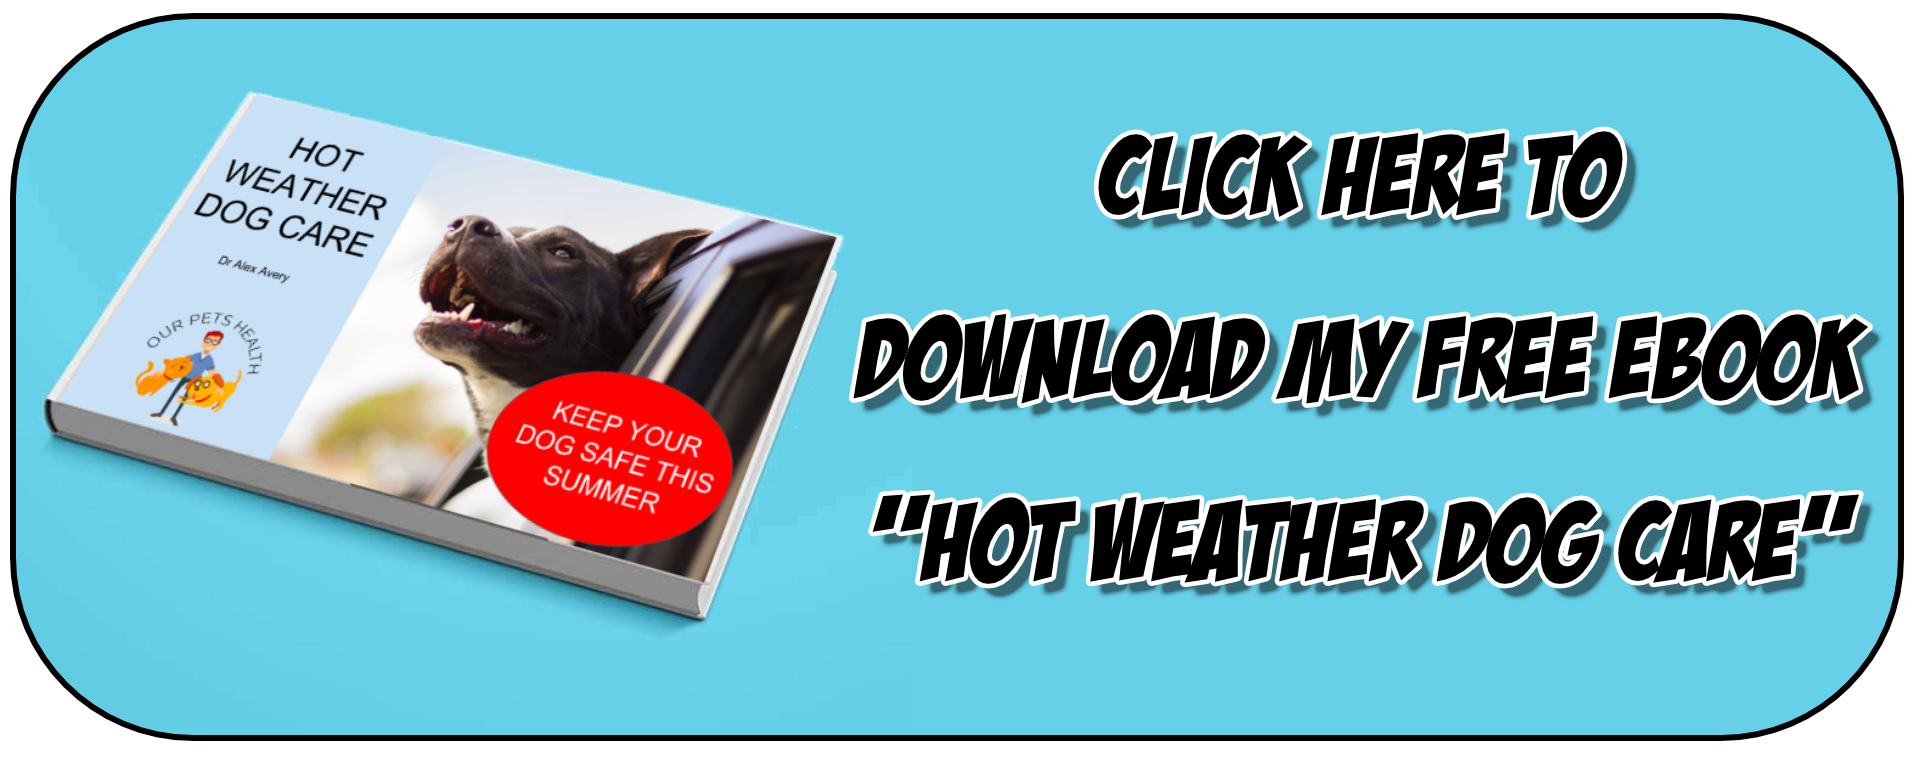 download my ebook: hot weather dog care - keep your dog safe this summer and learn how to keep your dog cool in hot weather